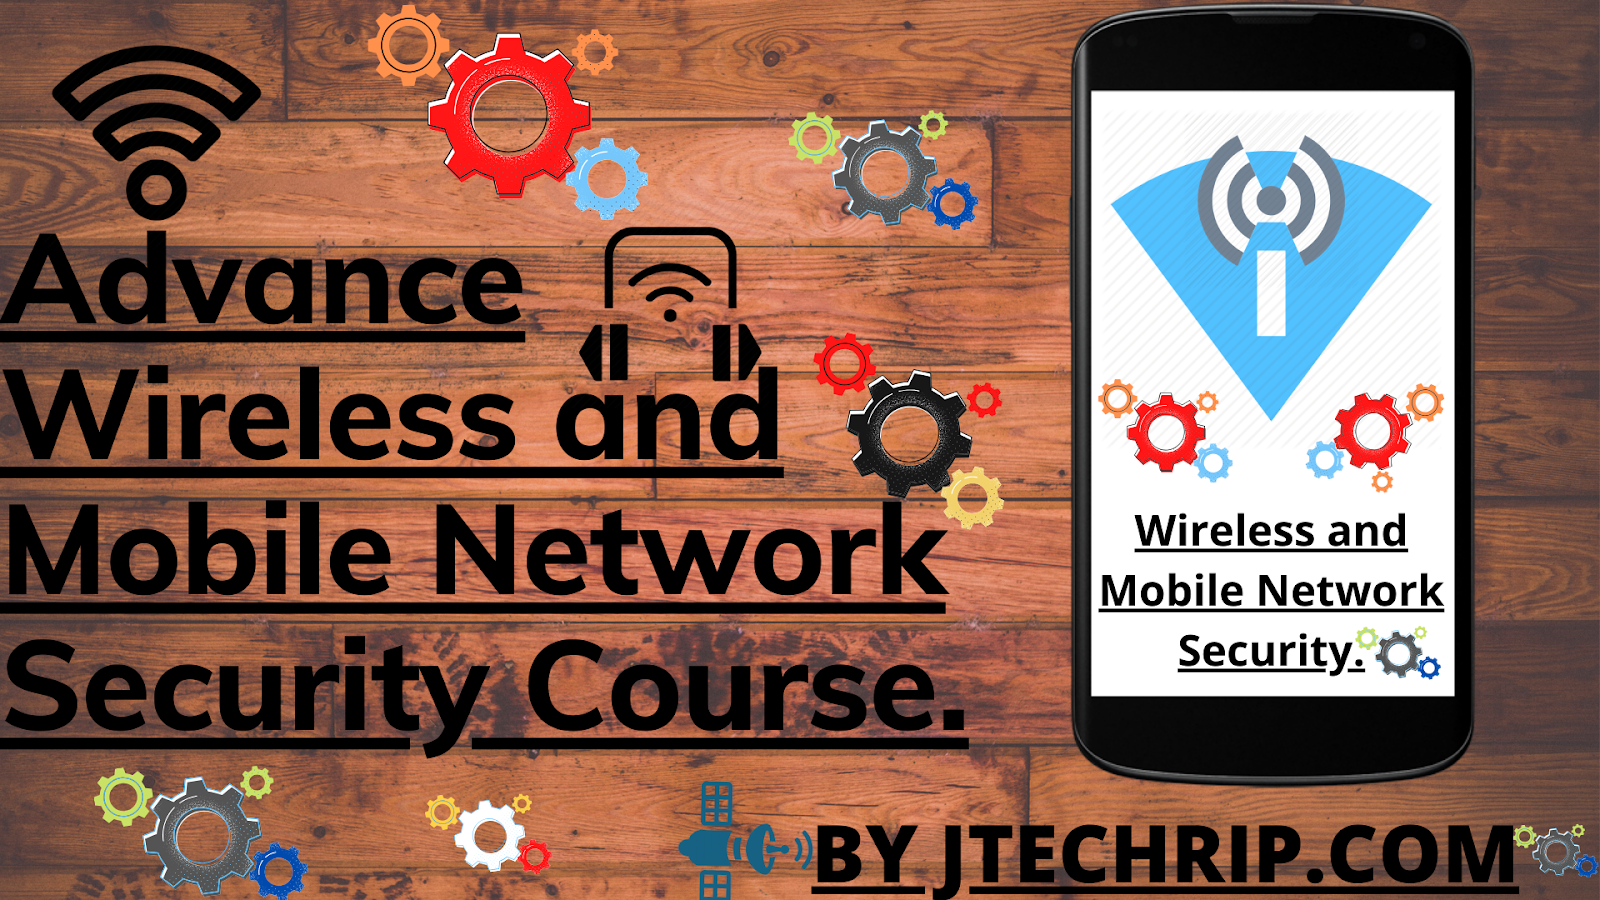 Advance Wireless and Mobile Network Security Course.